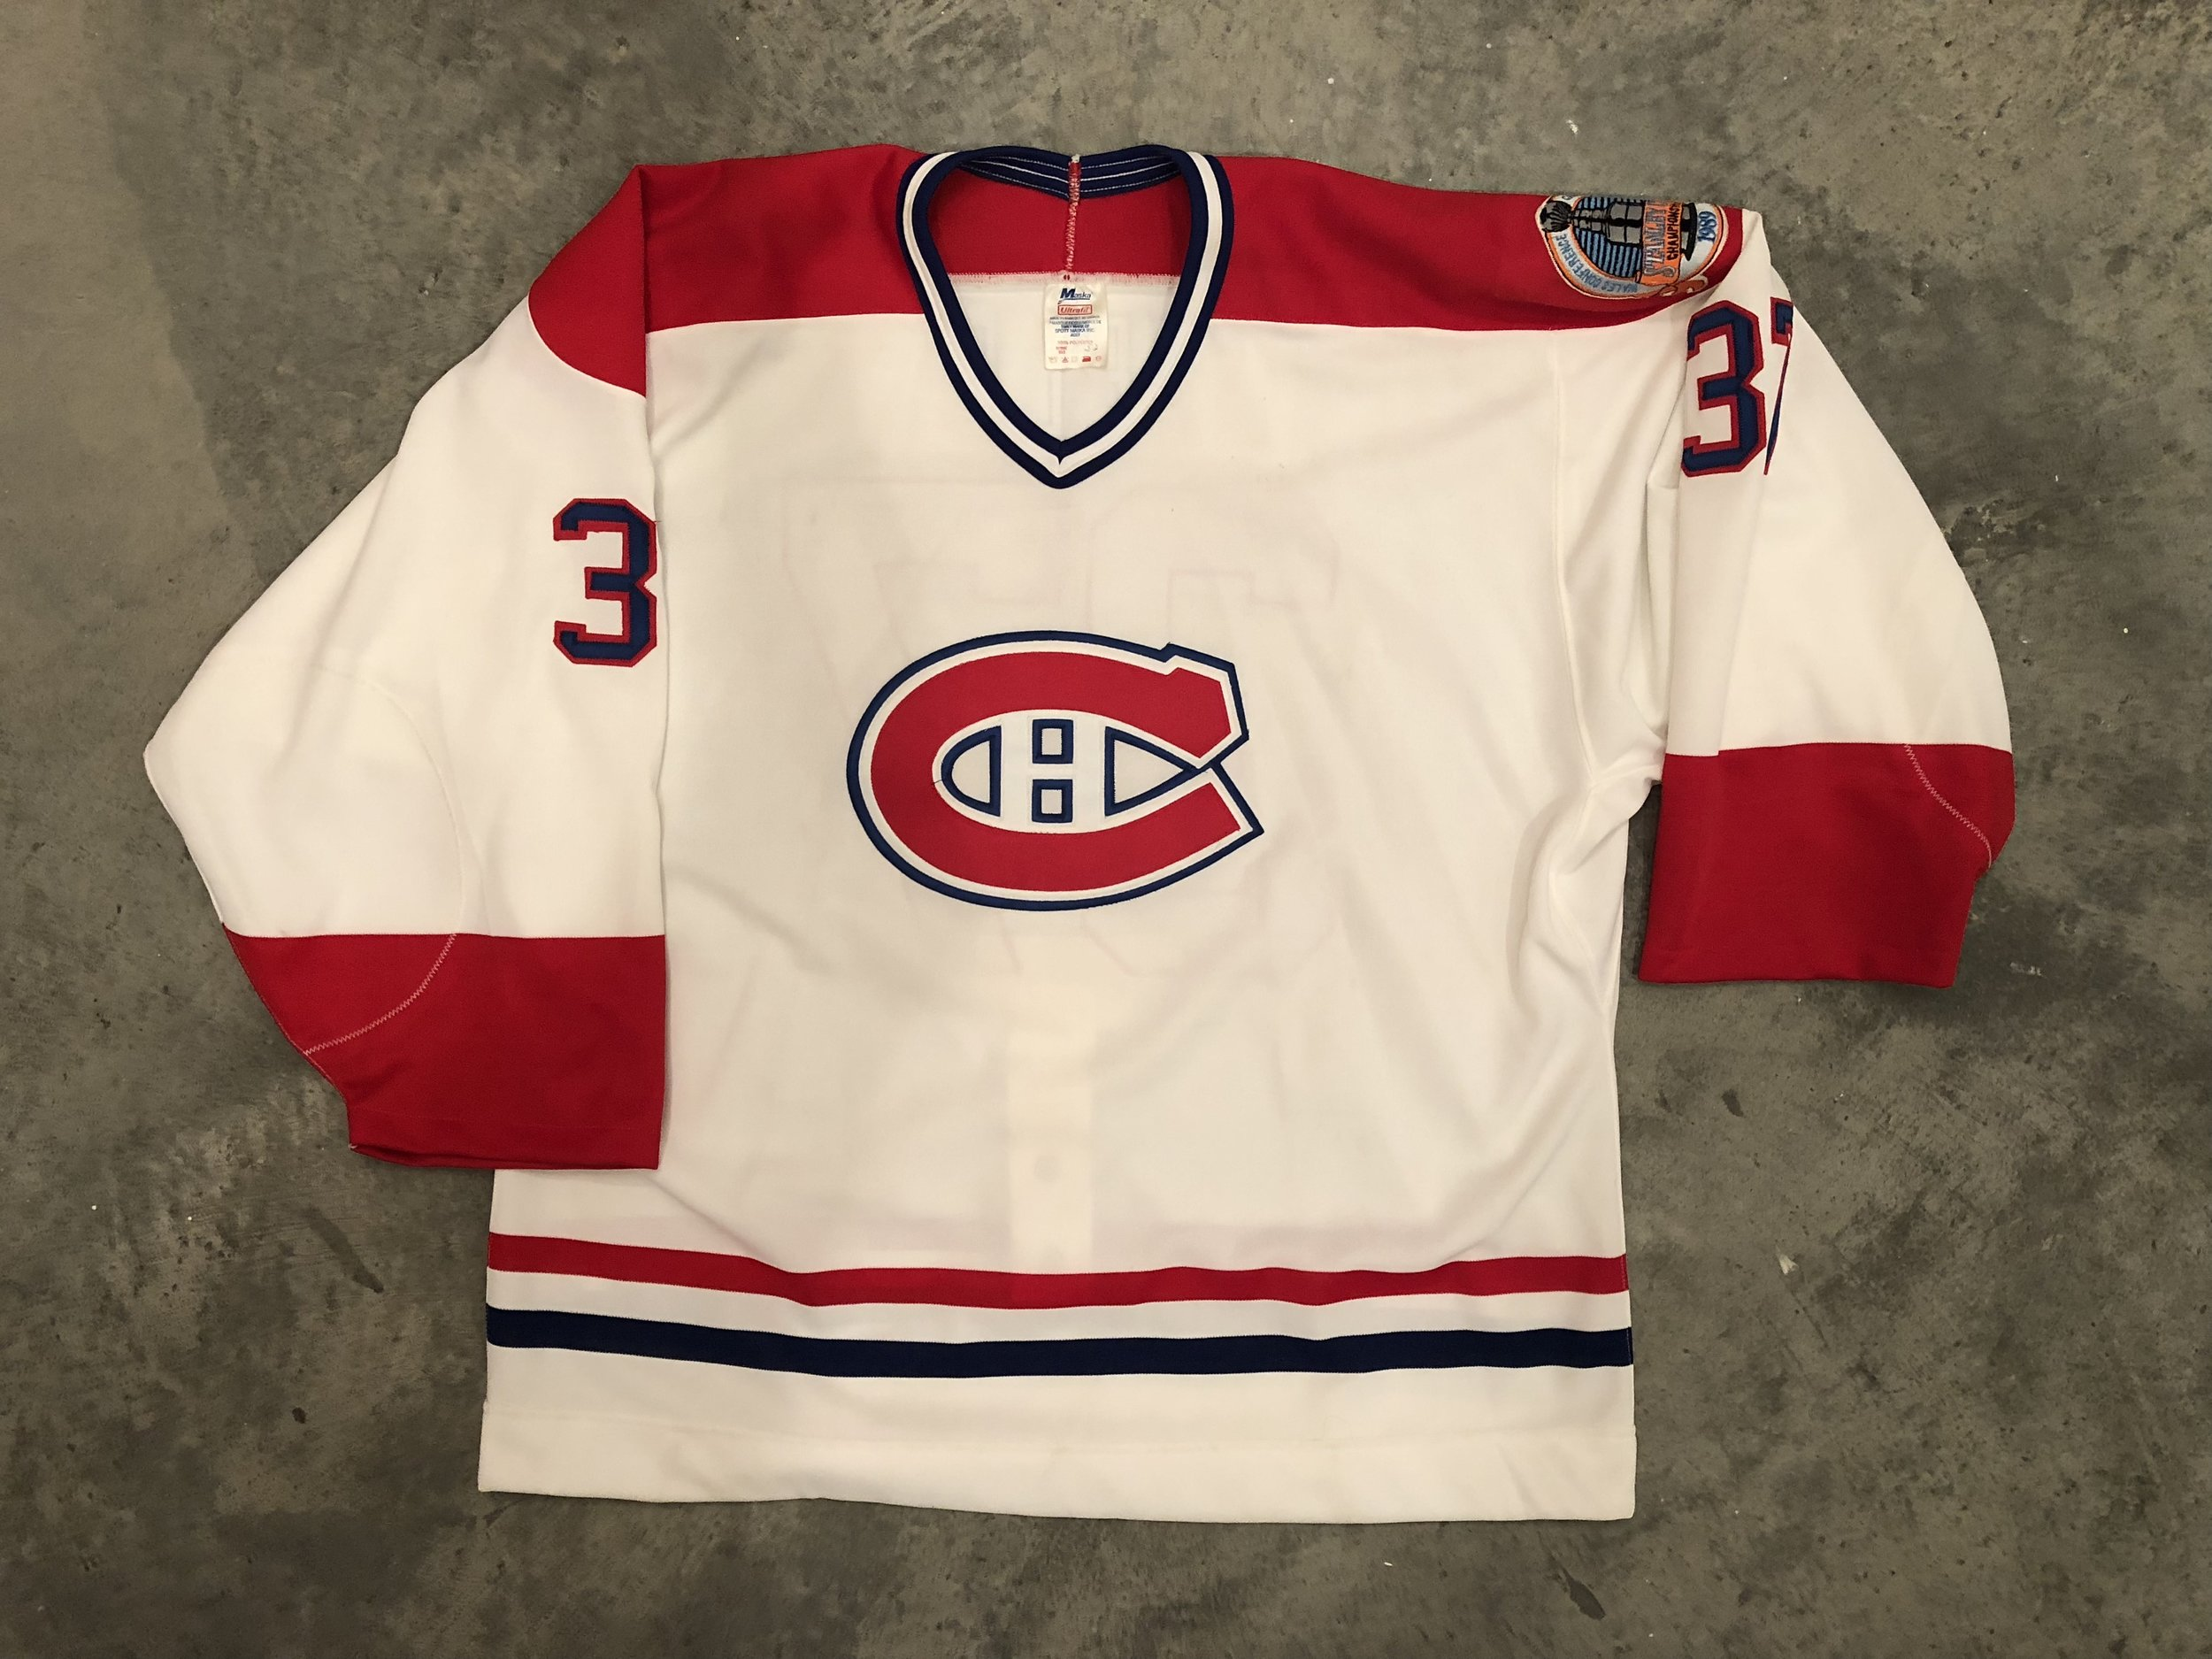 1989 Randy Exelby game issued home jersey with the 1989 Stanley Cup Finals patch